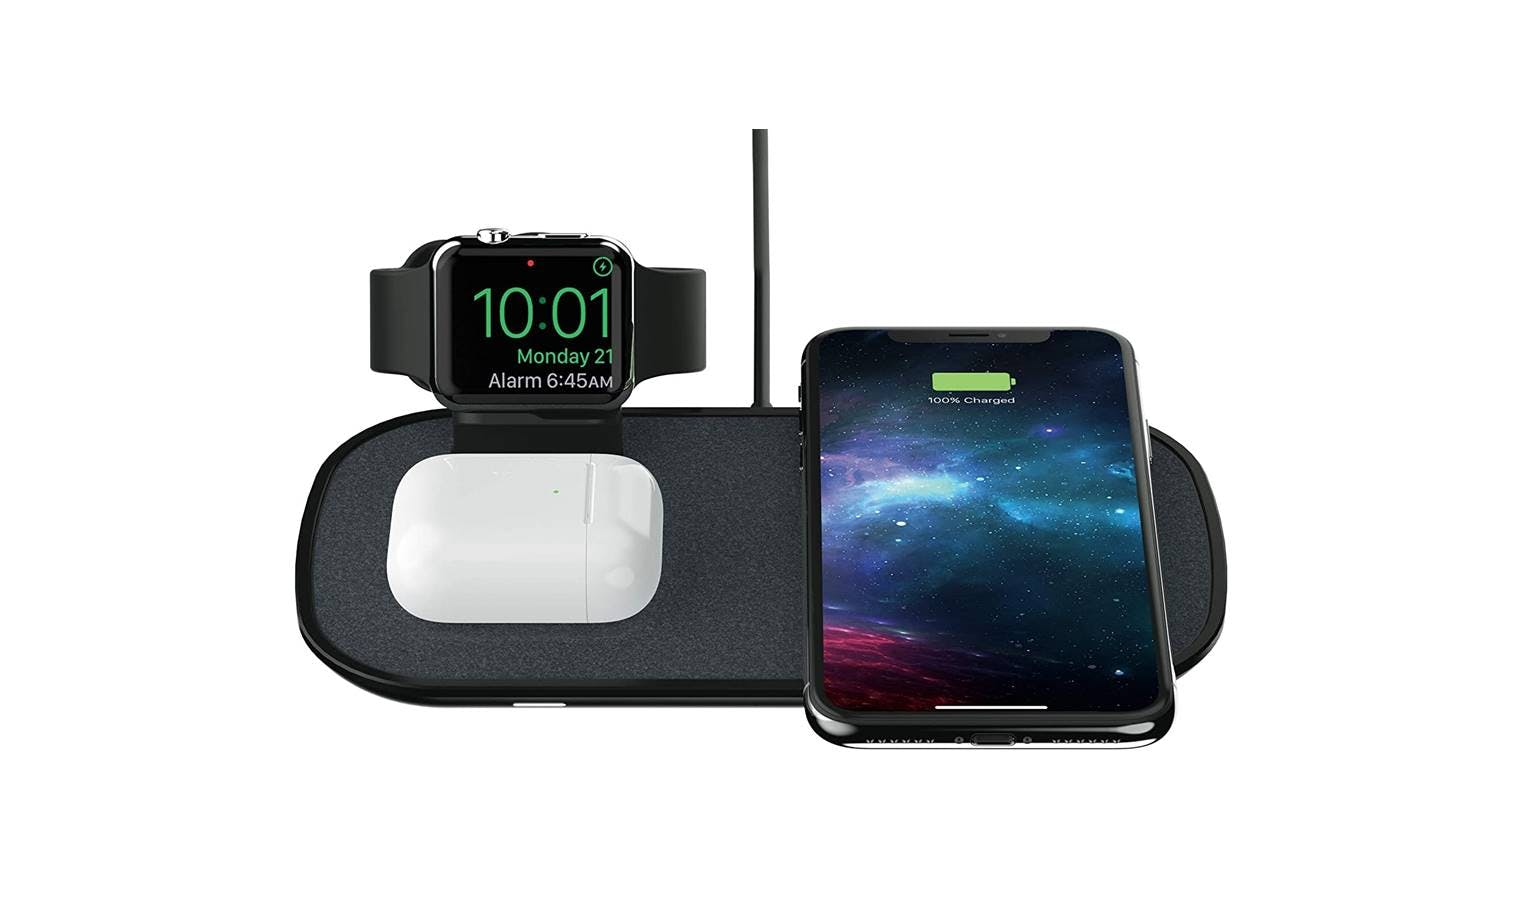 Mophie 3 In 1 Wireless Charging Pad For Apple Black Fabric Harvey Norman Singapore Has been added to your cart. mophie 3 in 1 wireless charging pad for apple black fabric